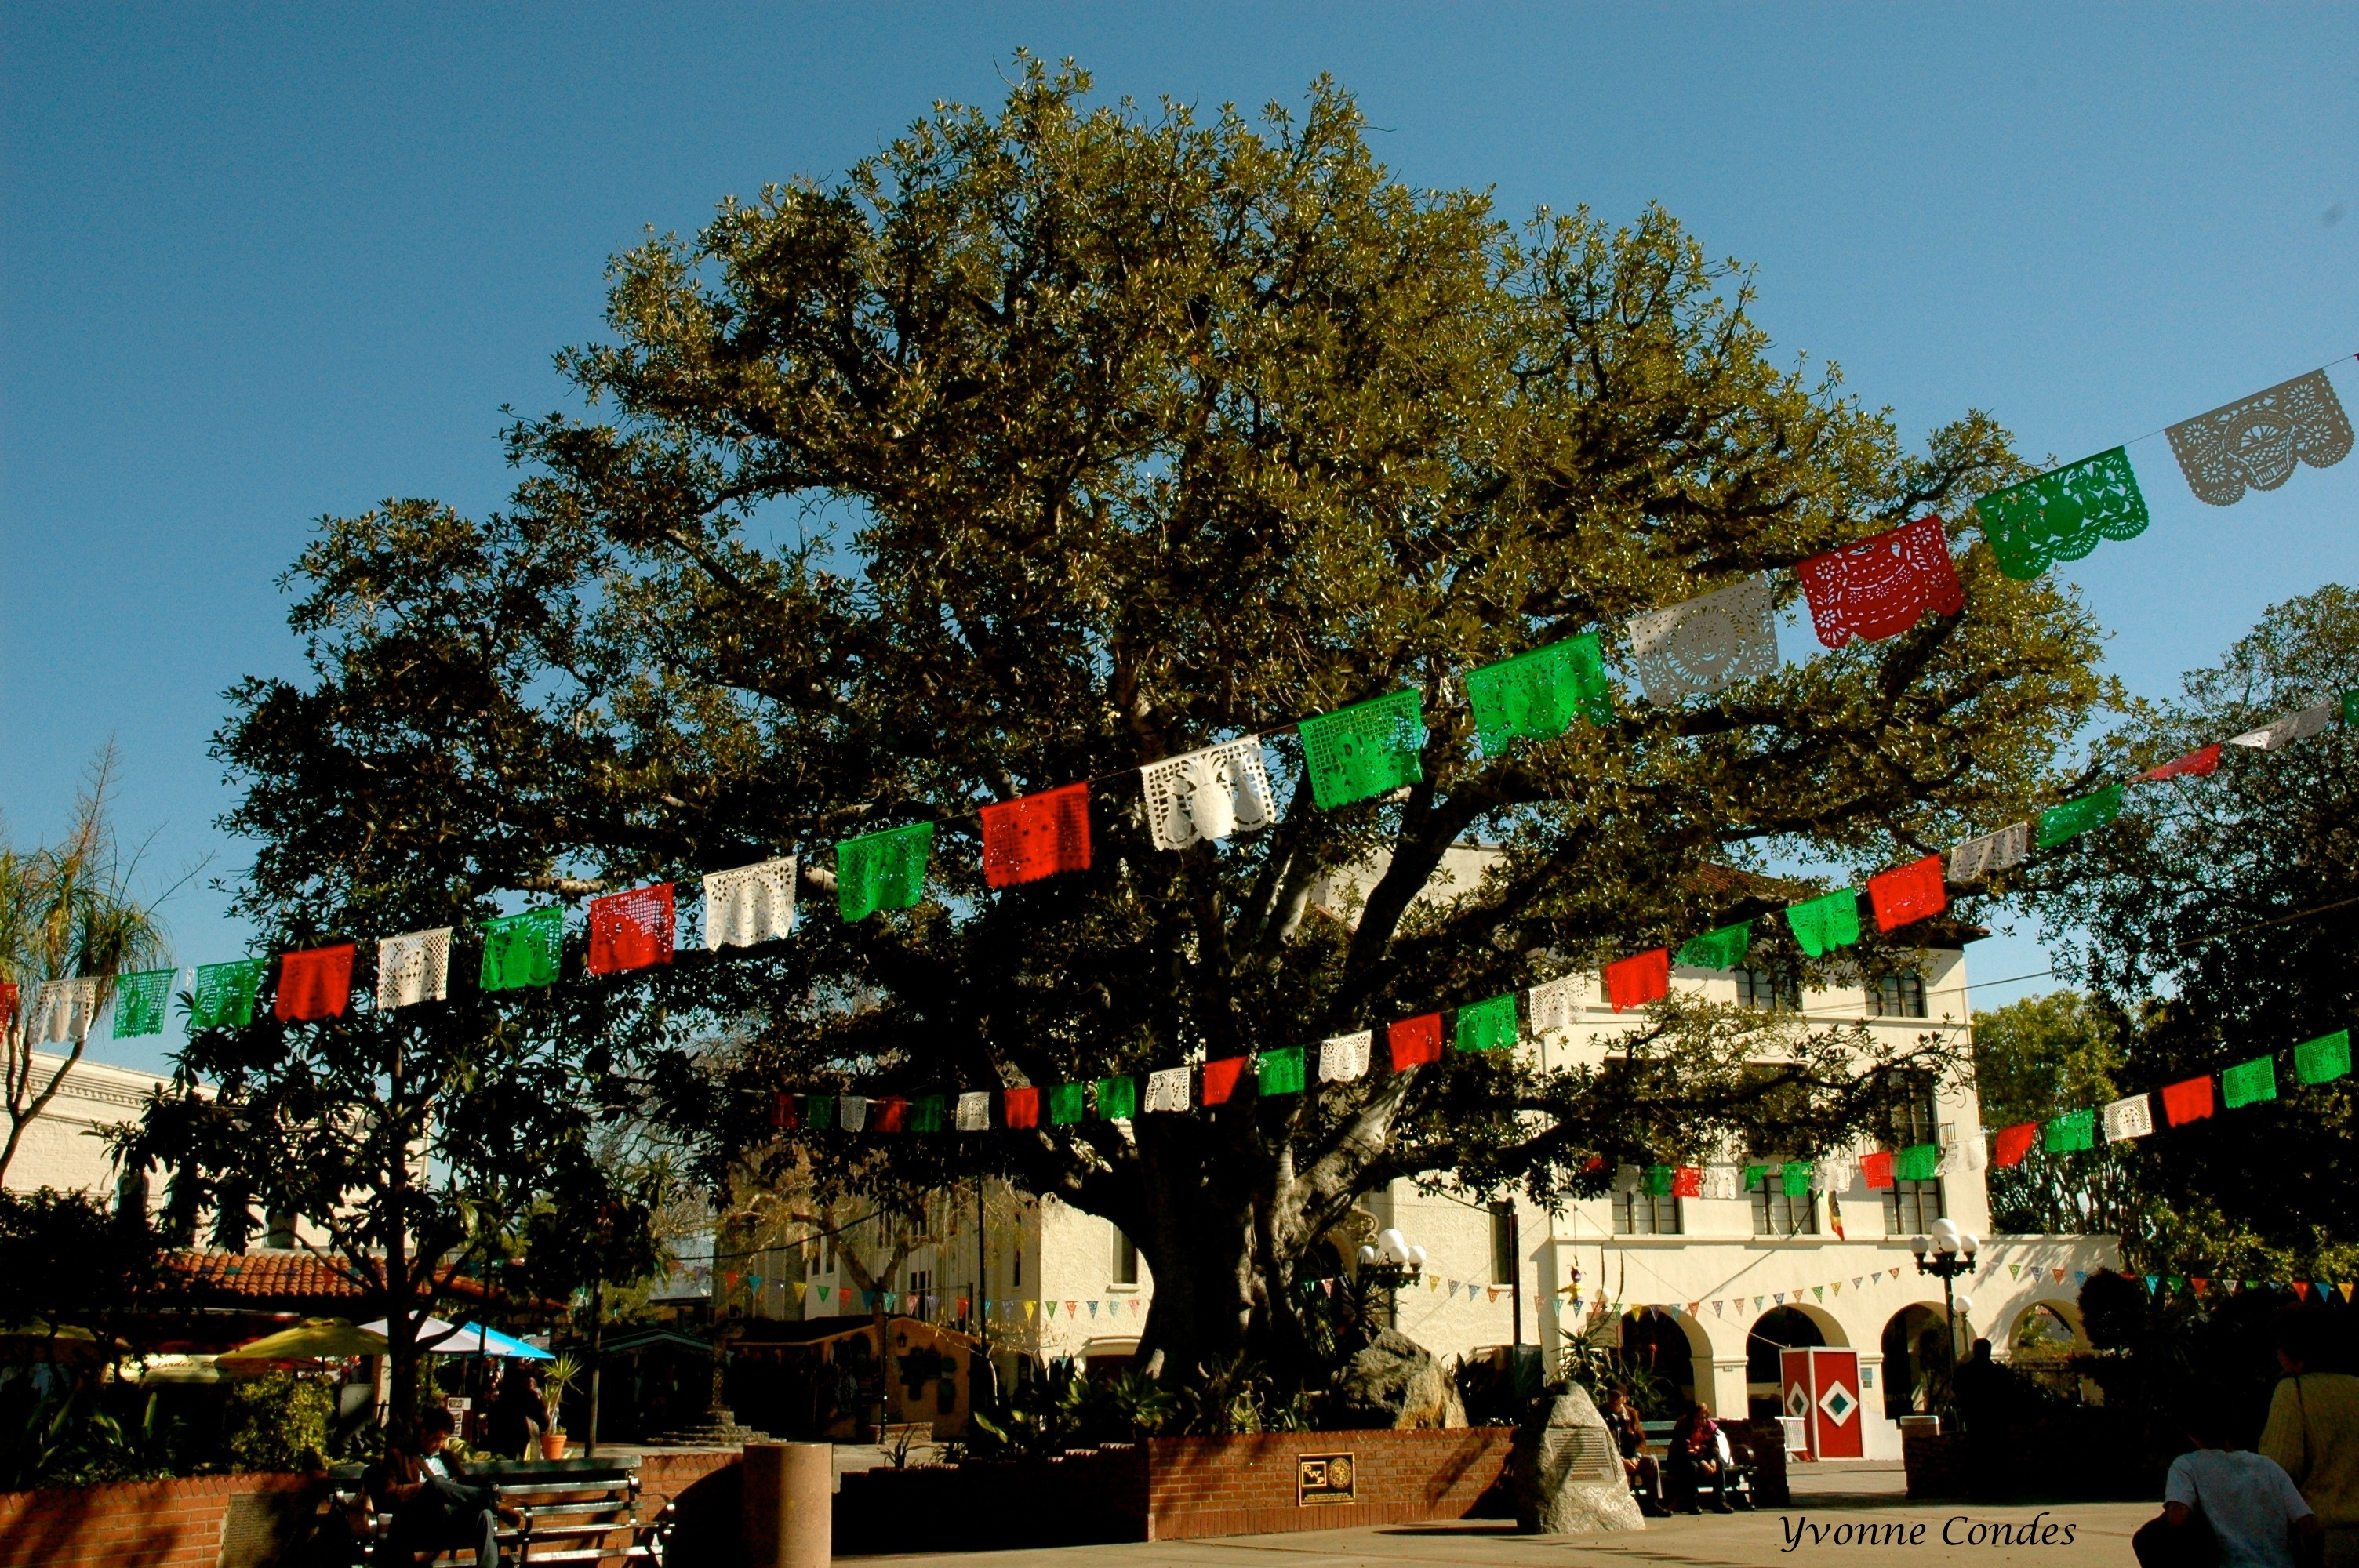 Olvera Street has many fun things for families to do - restaurants, shopping, outdoor space